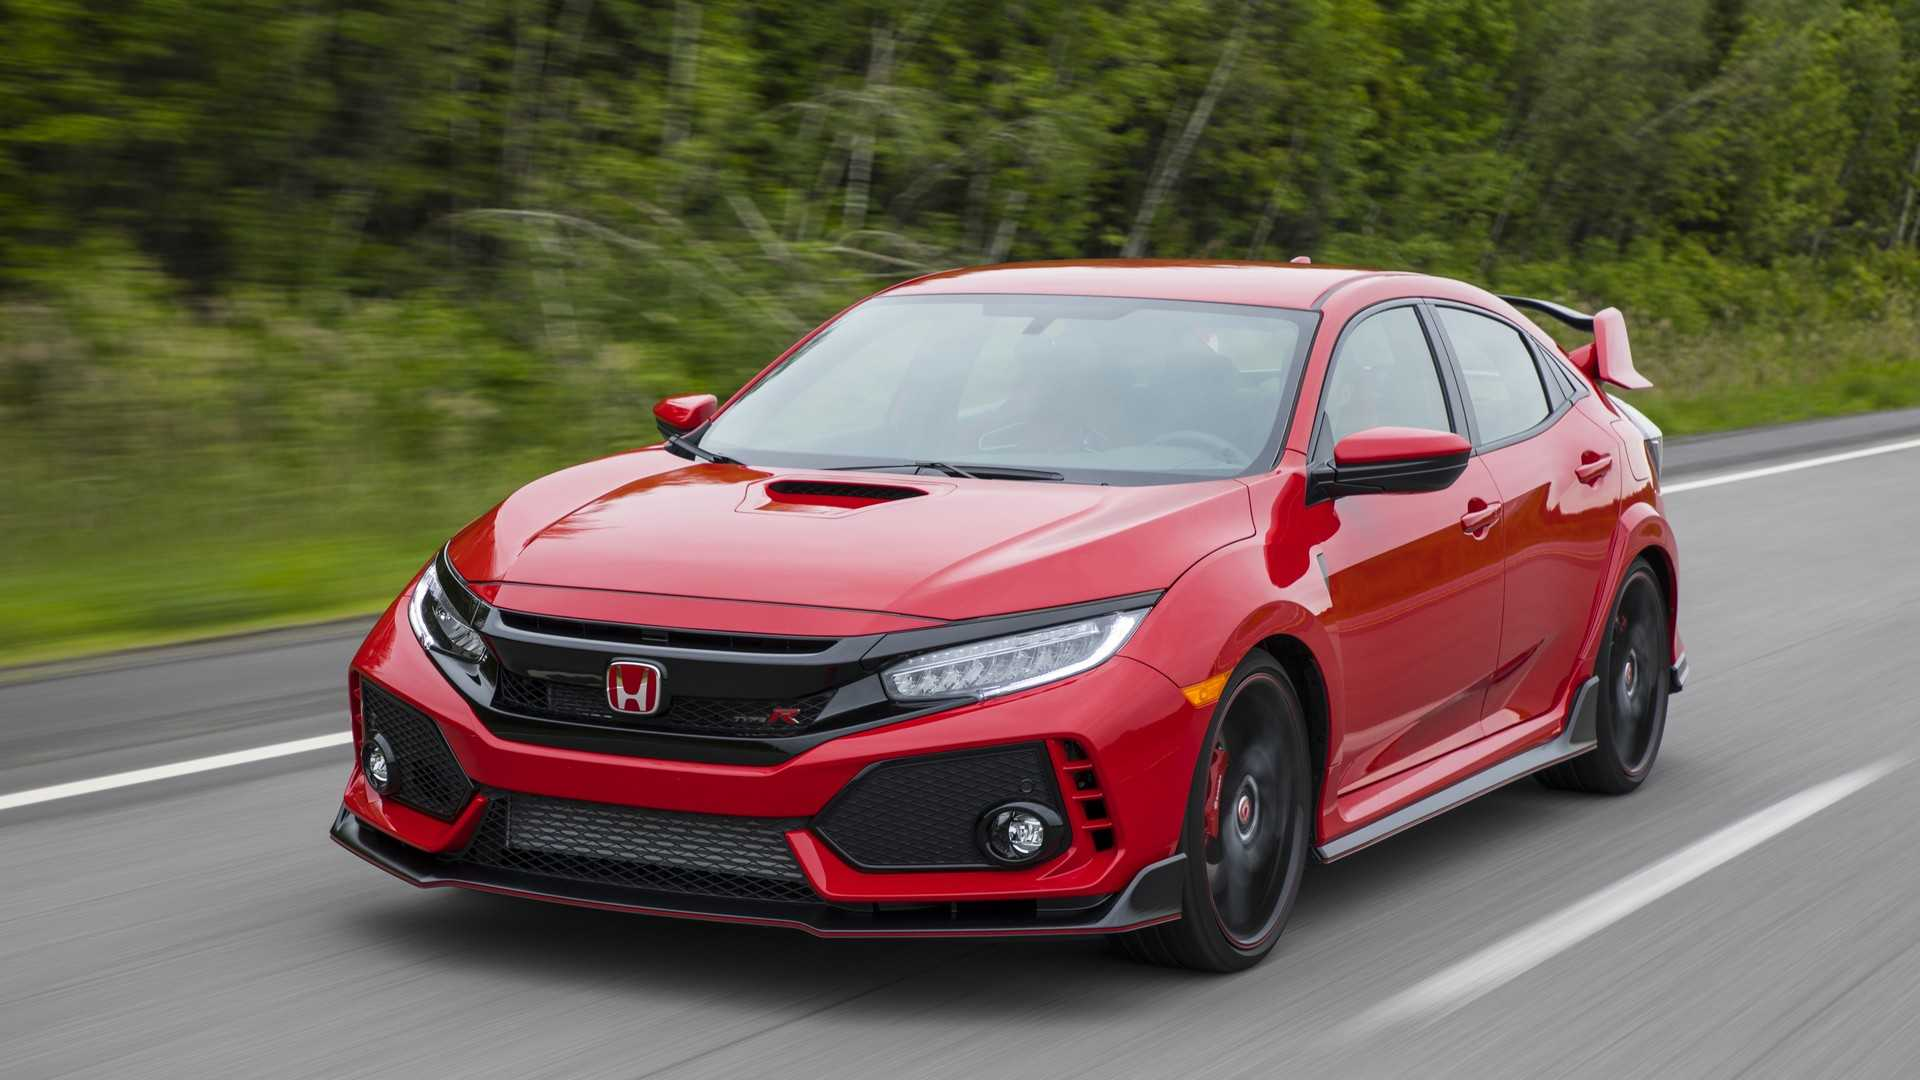 2019 Honda Civic Type R (Color: Rallye Red) Front Three-Quarter Wallpapers (3)